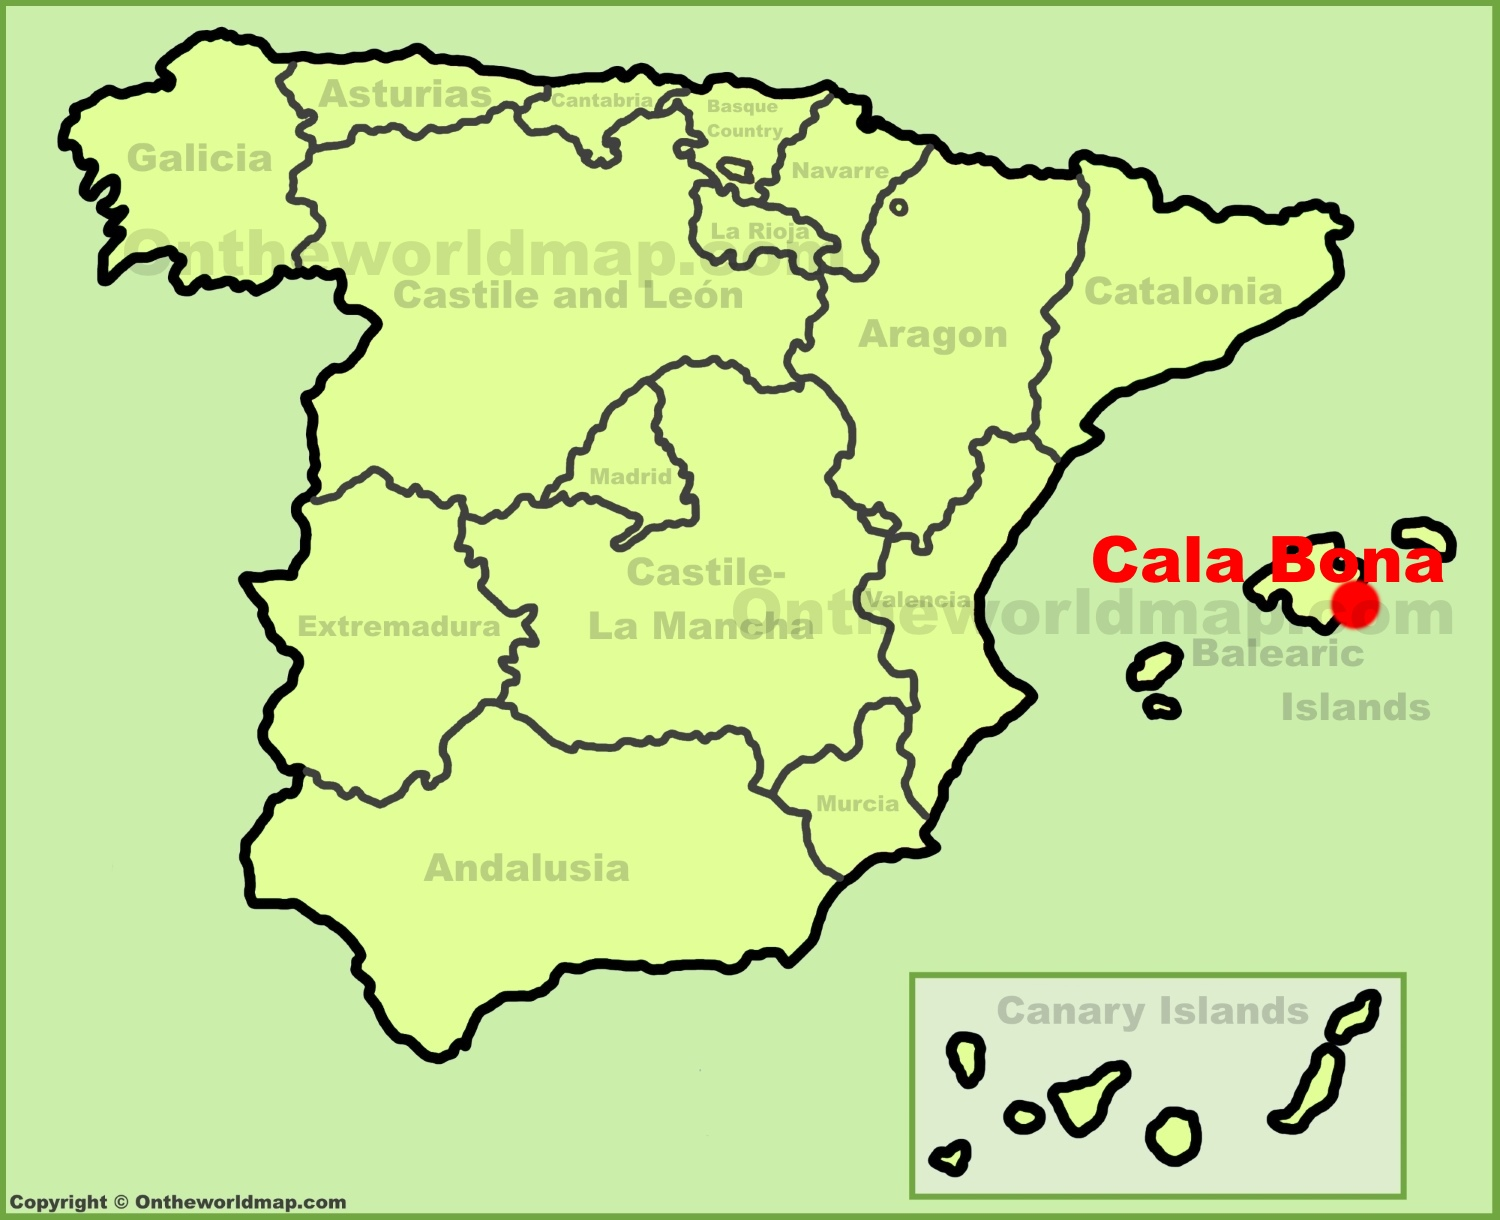 Cala Bona location on the Spain map